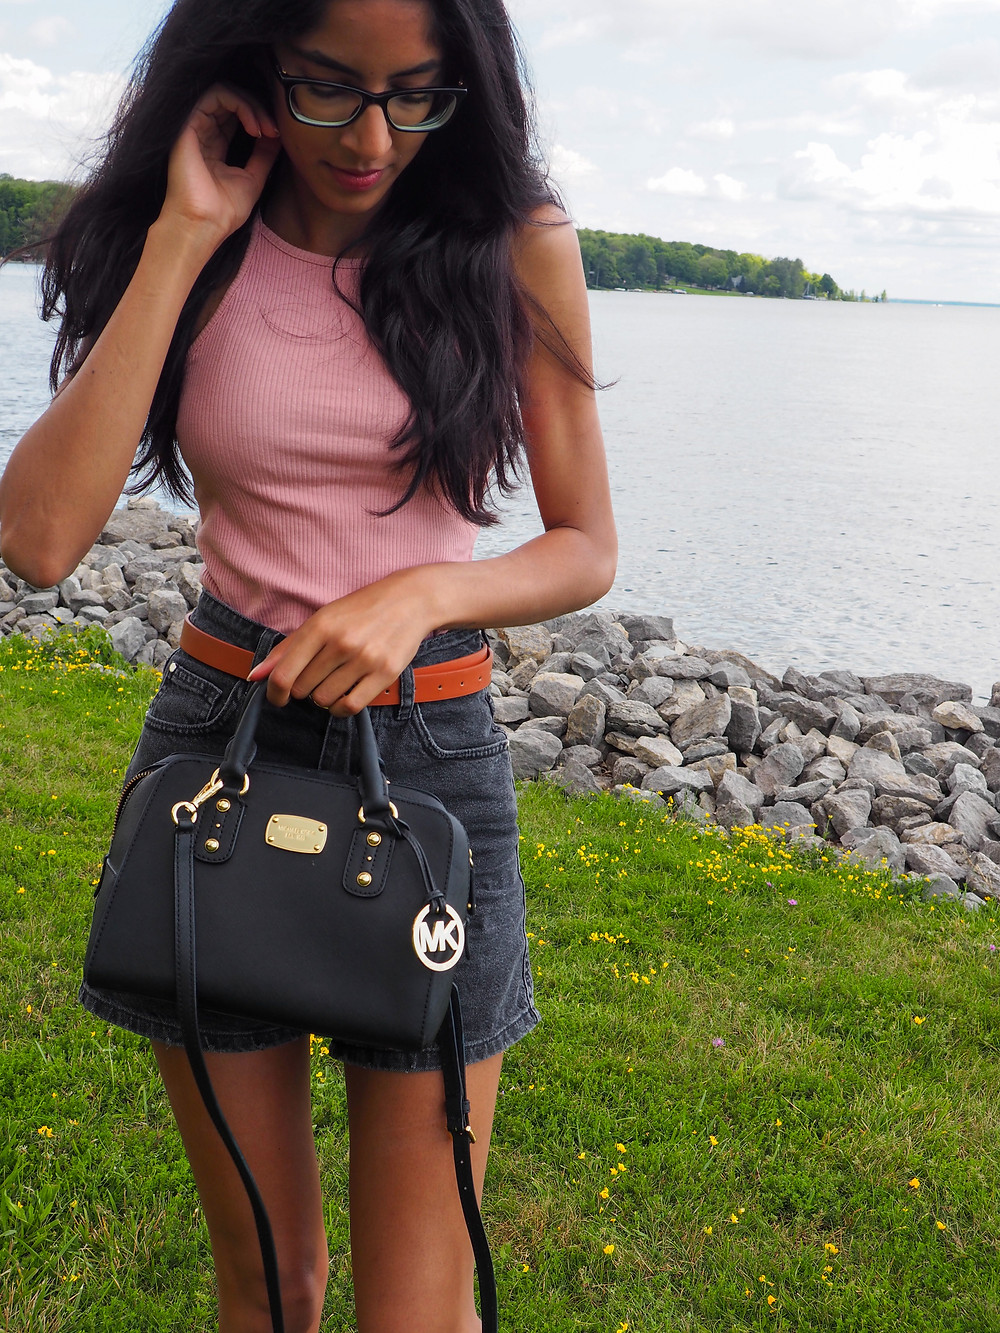 woman walking by water in shorts and tshirt with handbag